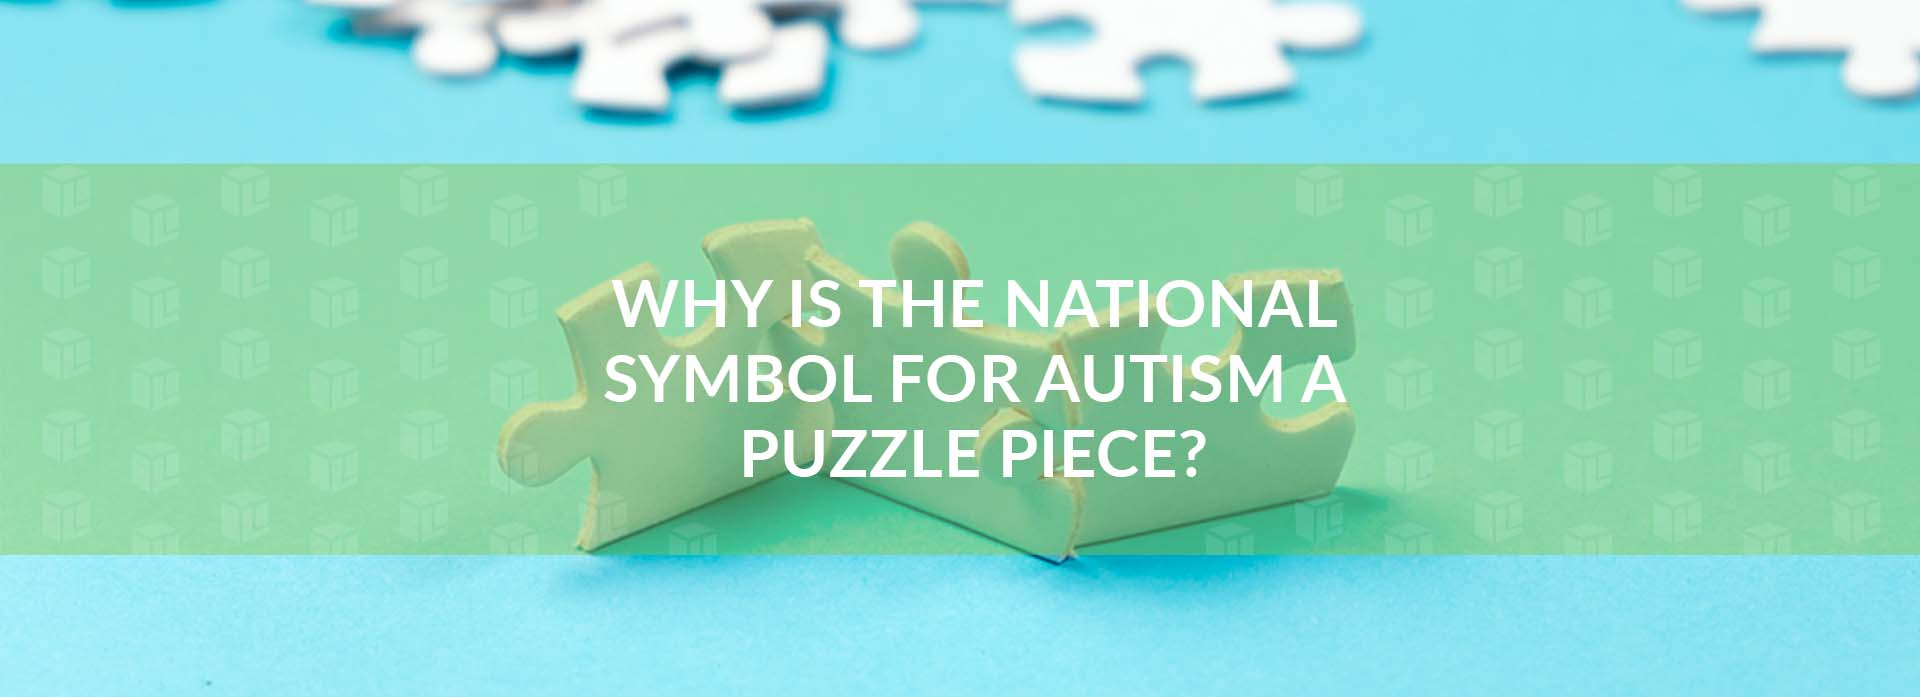 Why Is The National Symbol For Autism A Puzzle Piece?